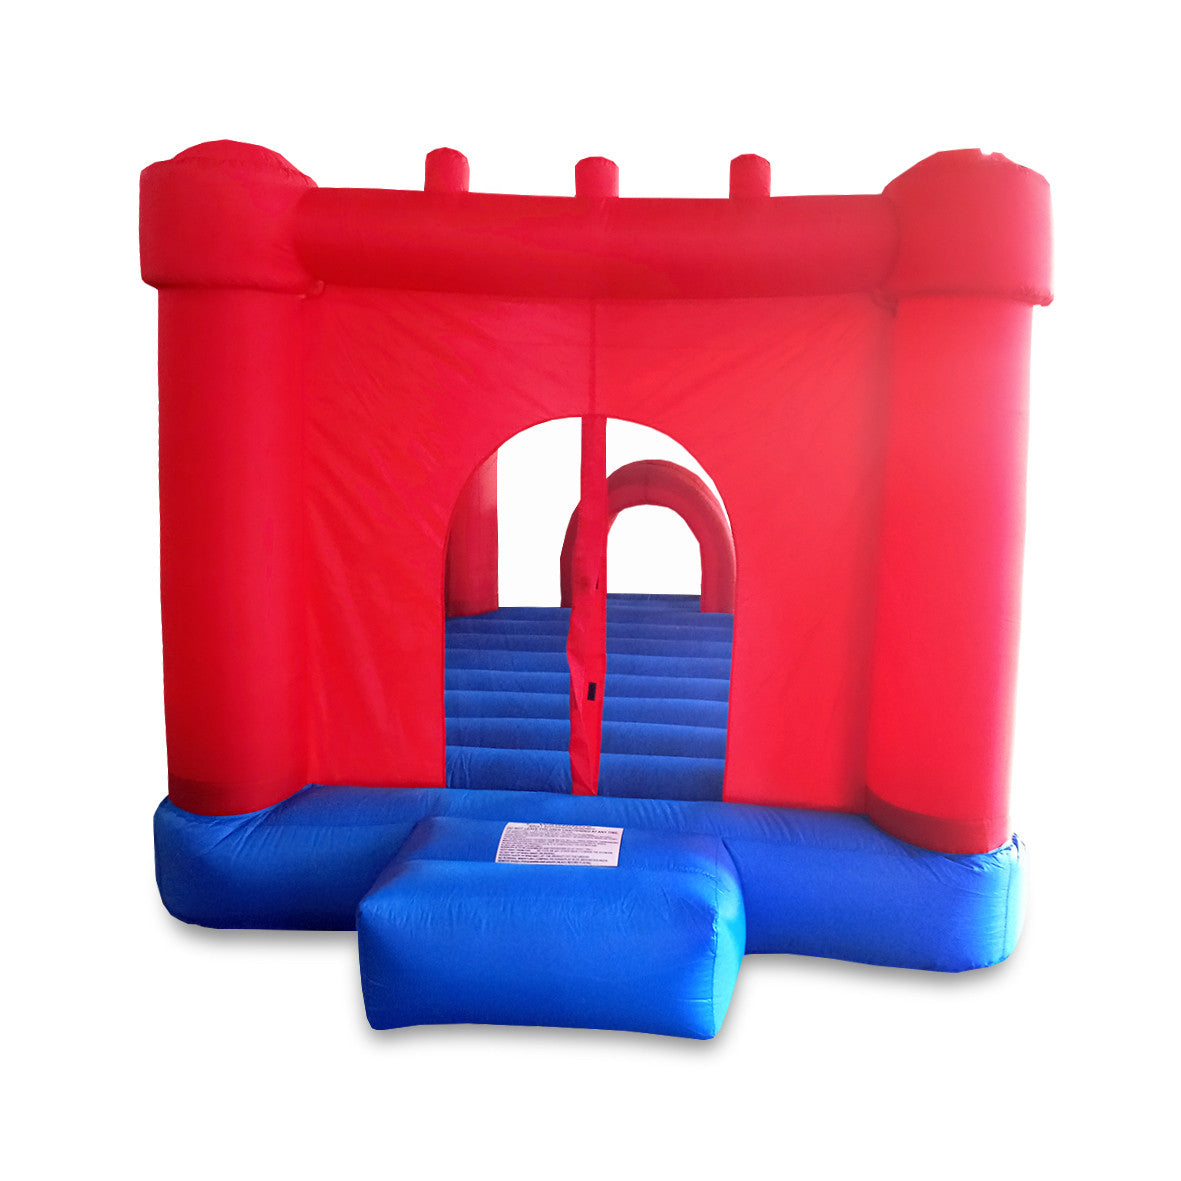 GIANT Inflatable bouncer, 145x95x74(In)/370x240x190(cm), for ages 3-6